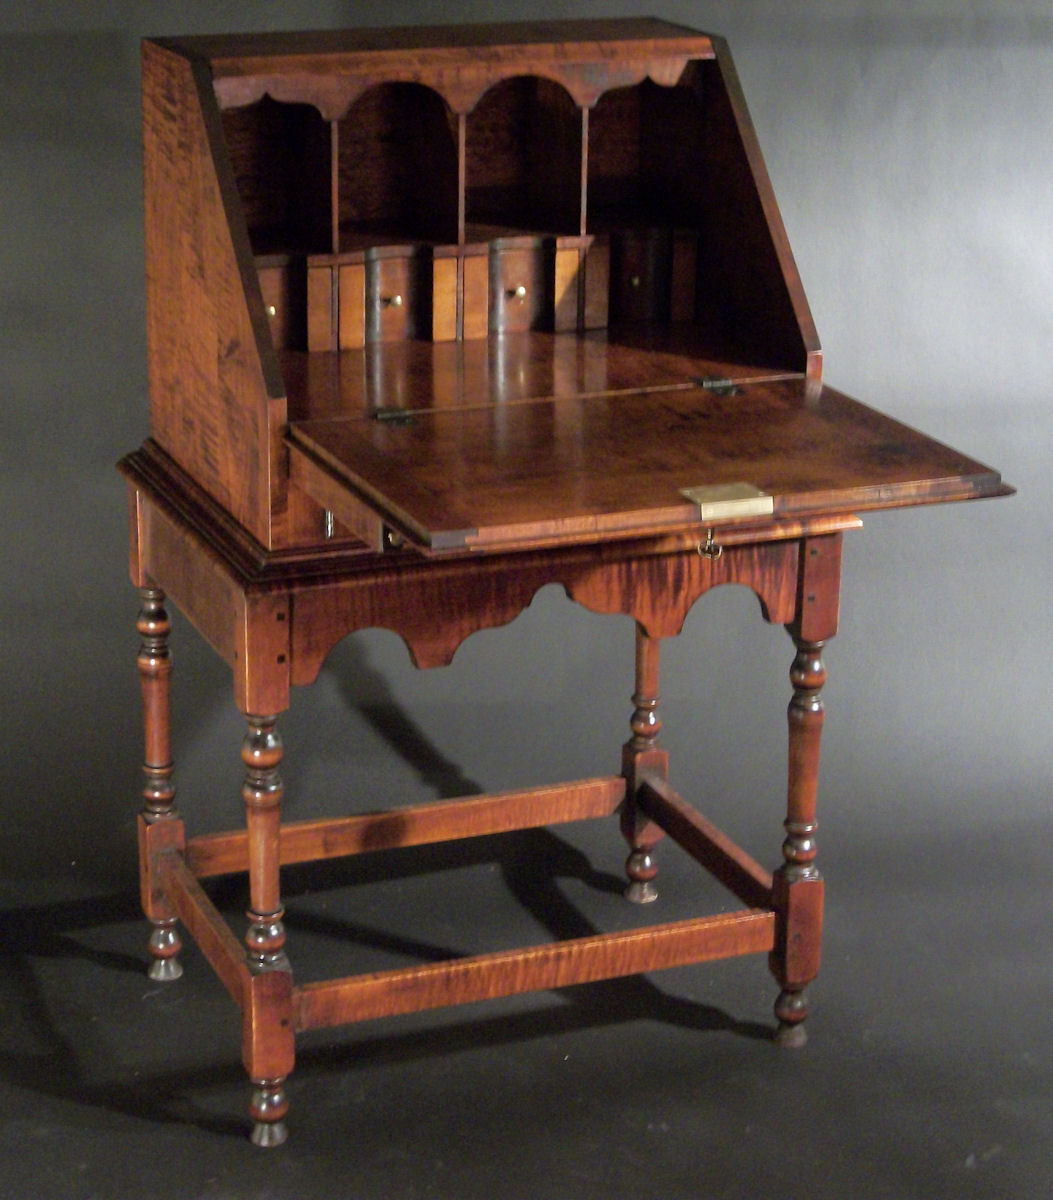 Marvelous Slant Lid Secretary And Thomas Jefferson Swivel Windsor Gmtry Best Dining Table And Chair Ideas Images Gmtryco